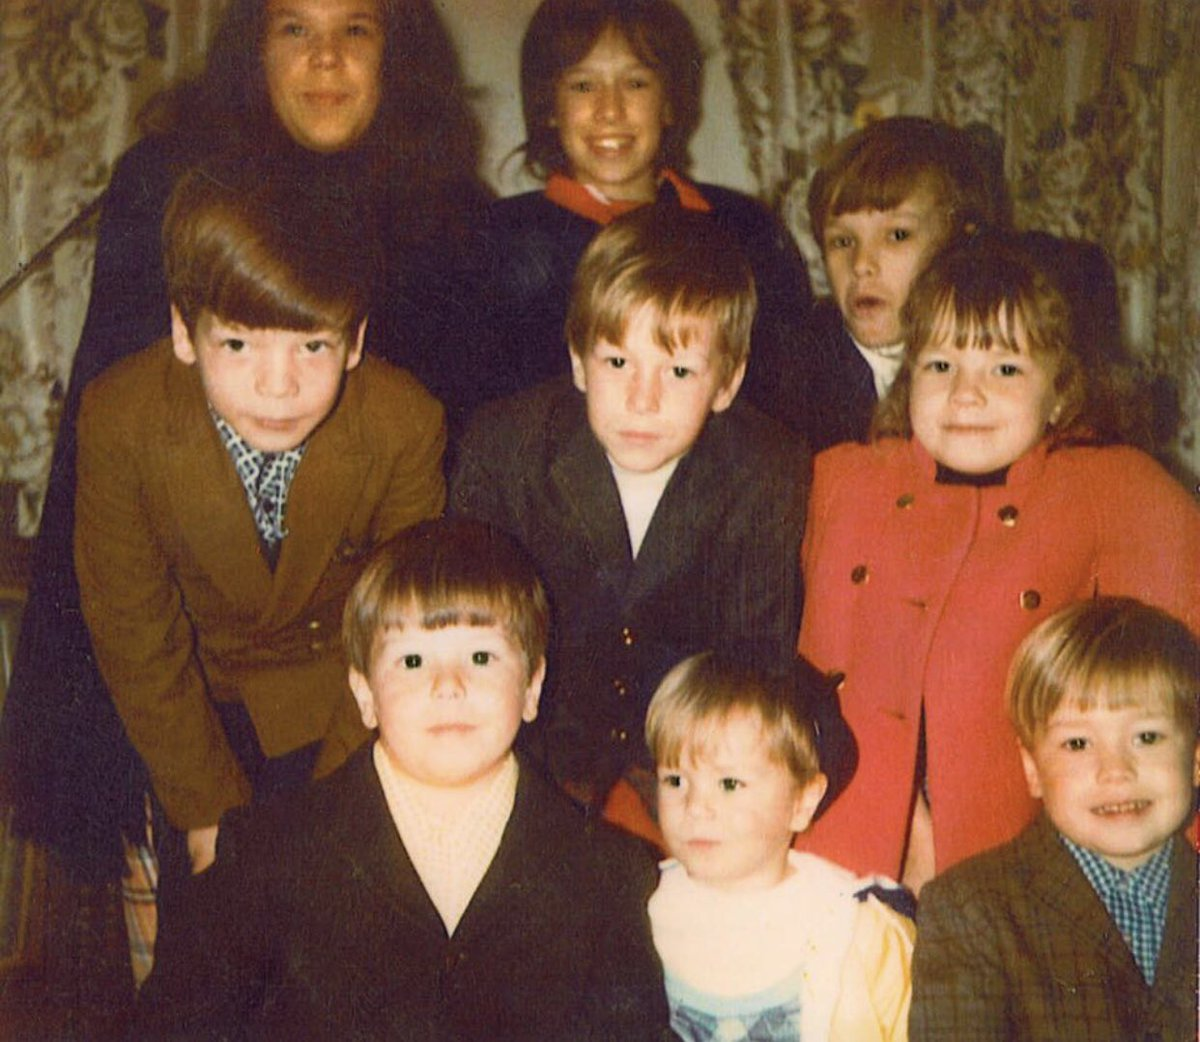 Happy #NationalSiblingsDay — a rare photo of all nine of us (I'm the youngest.) How many siblings do you have? https://t.co/S5wVzfogOO